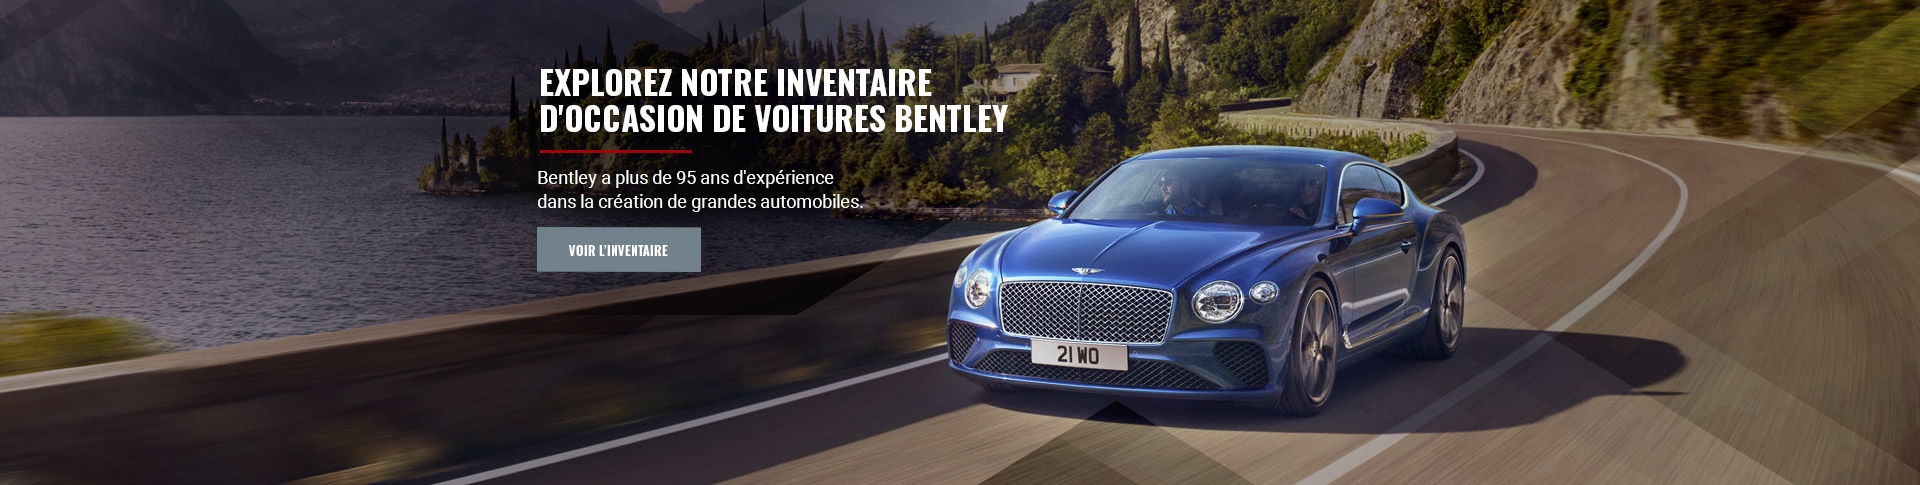 Inventaire Bentley